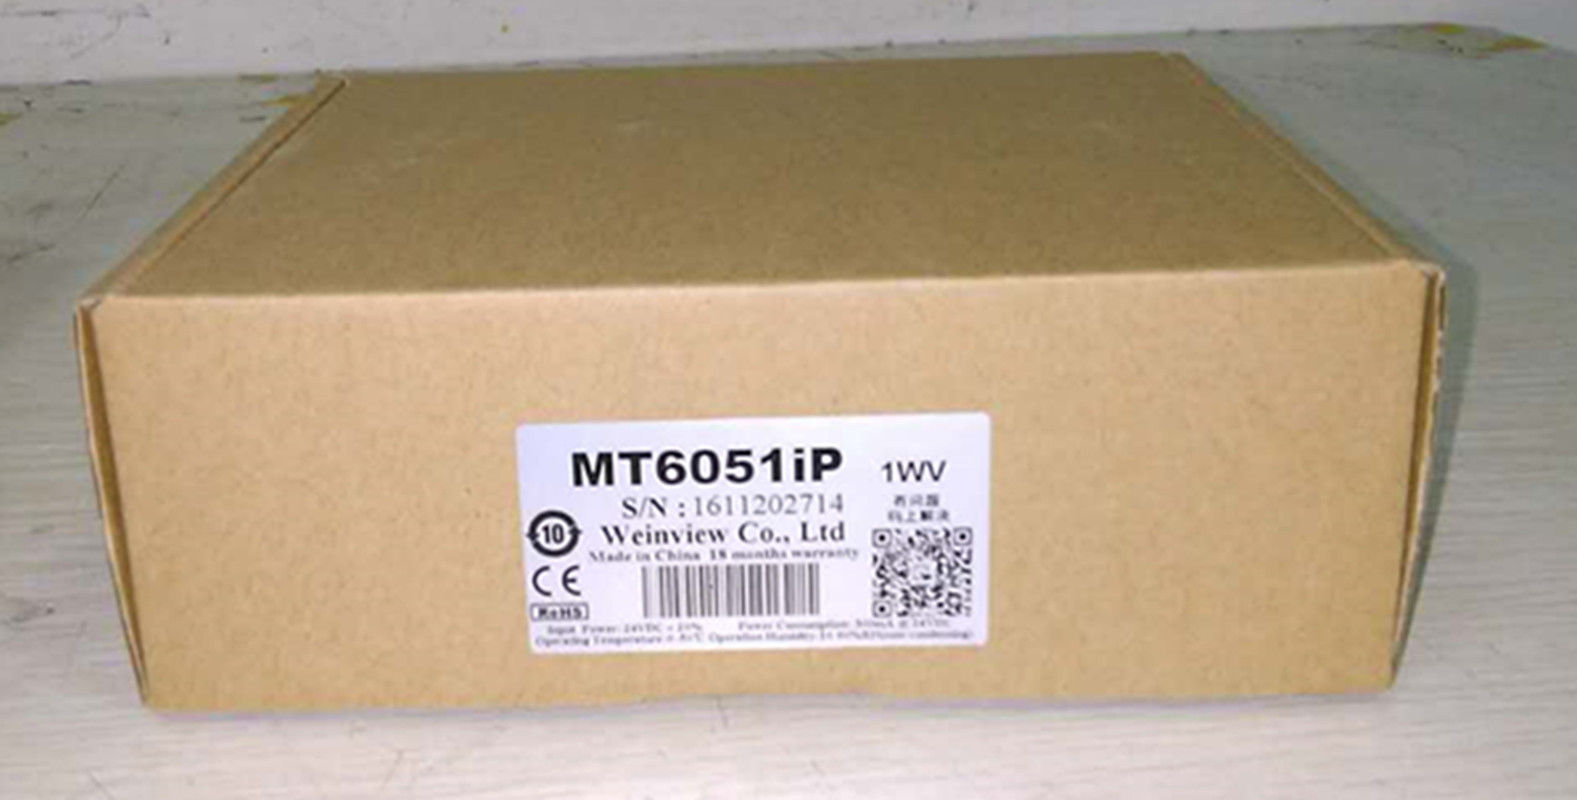 MT6051IP weinview 4.3inch HMI touch screen new in box replace MT6050iP